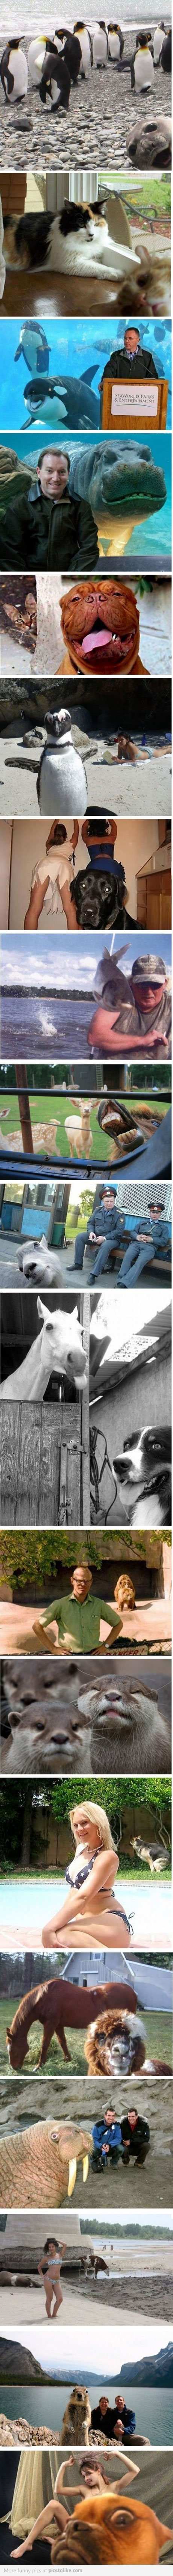 photobombing animals ahahah  these are really funny!